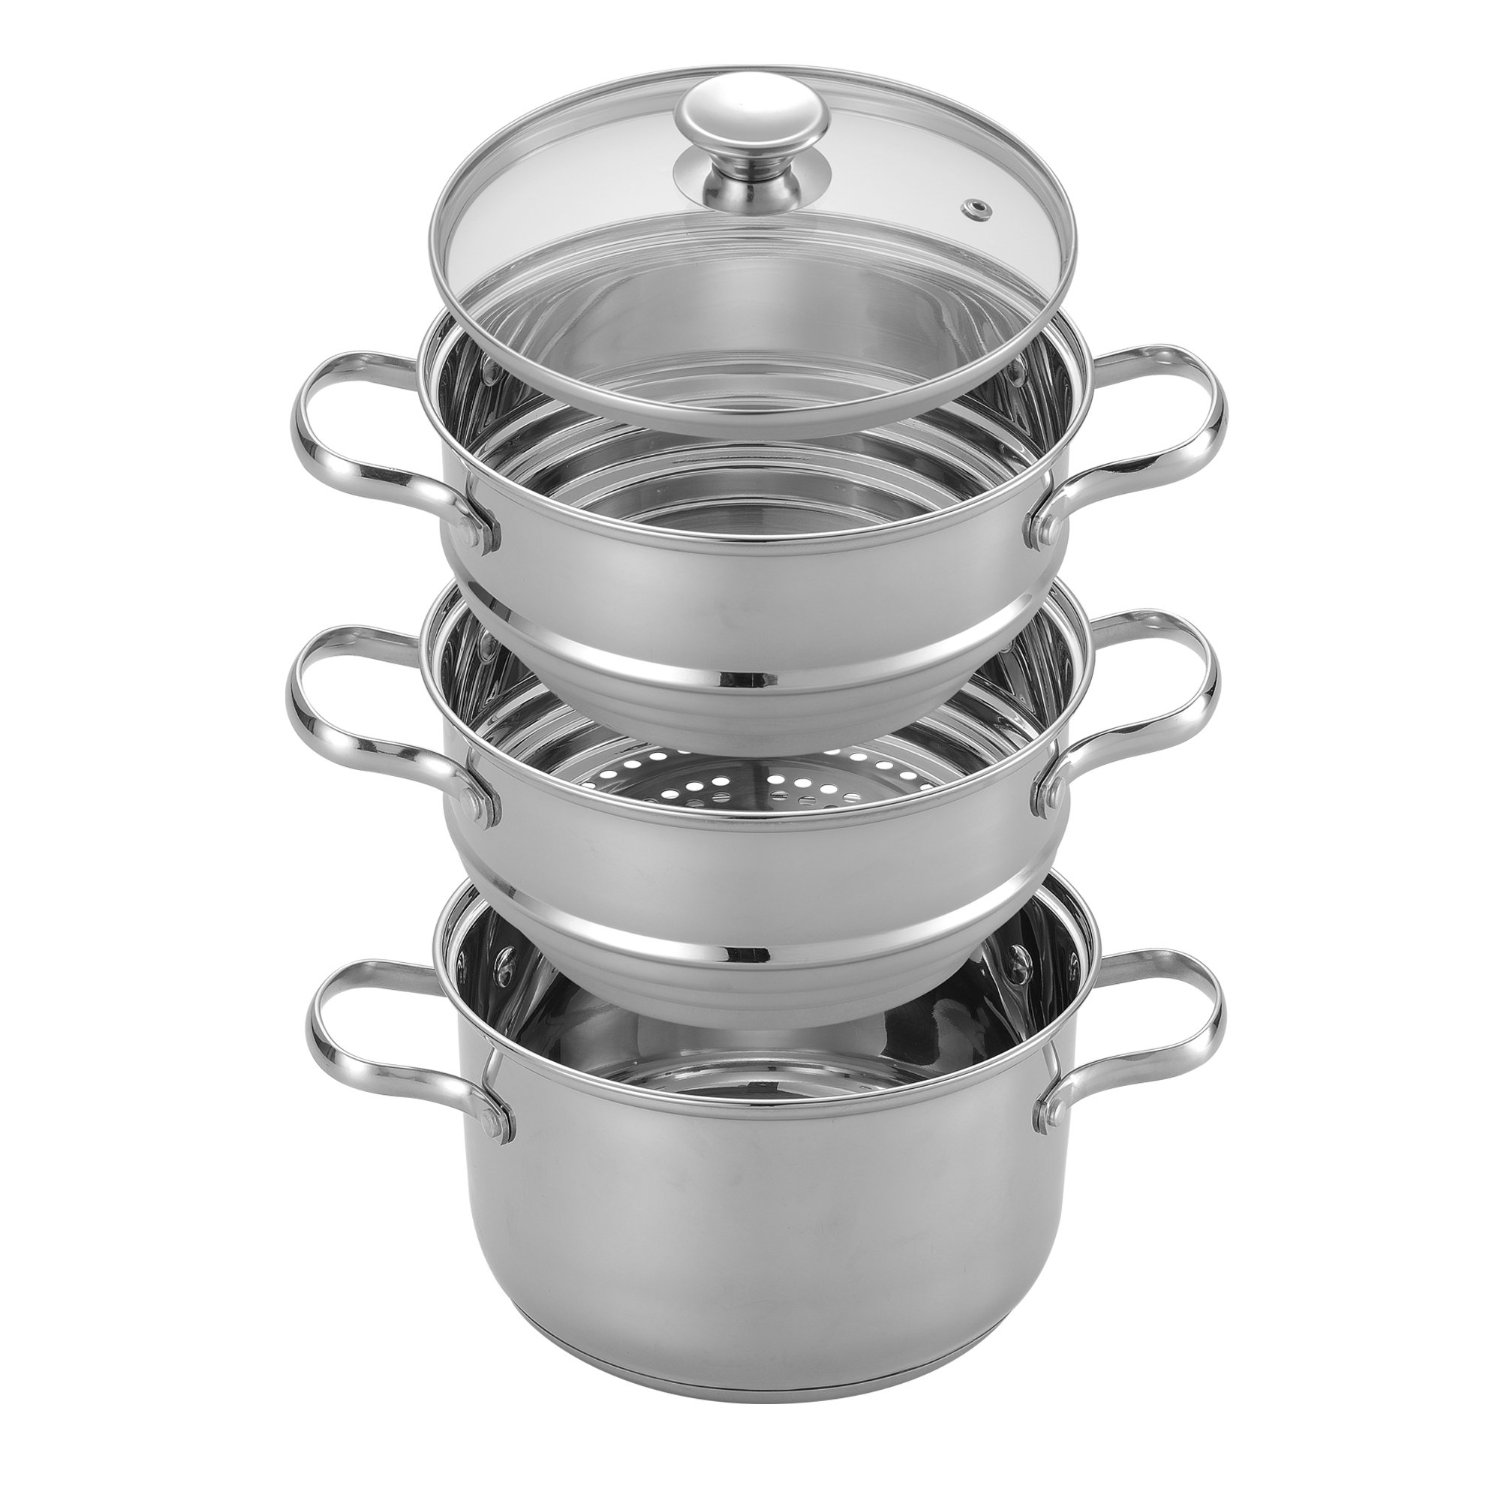 Cooking Pot Steamer ~ Cook n home nc double boiler steamer set stainless